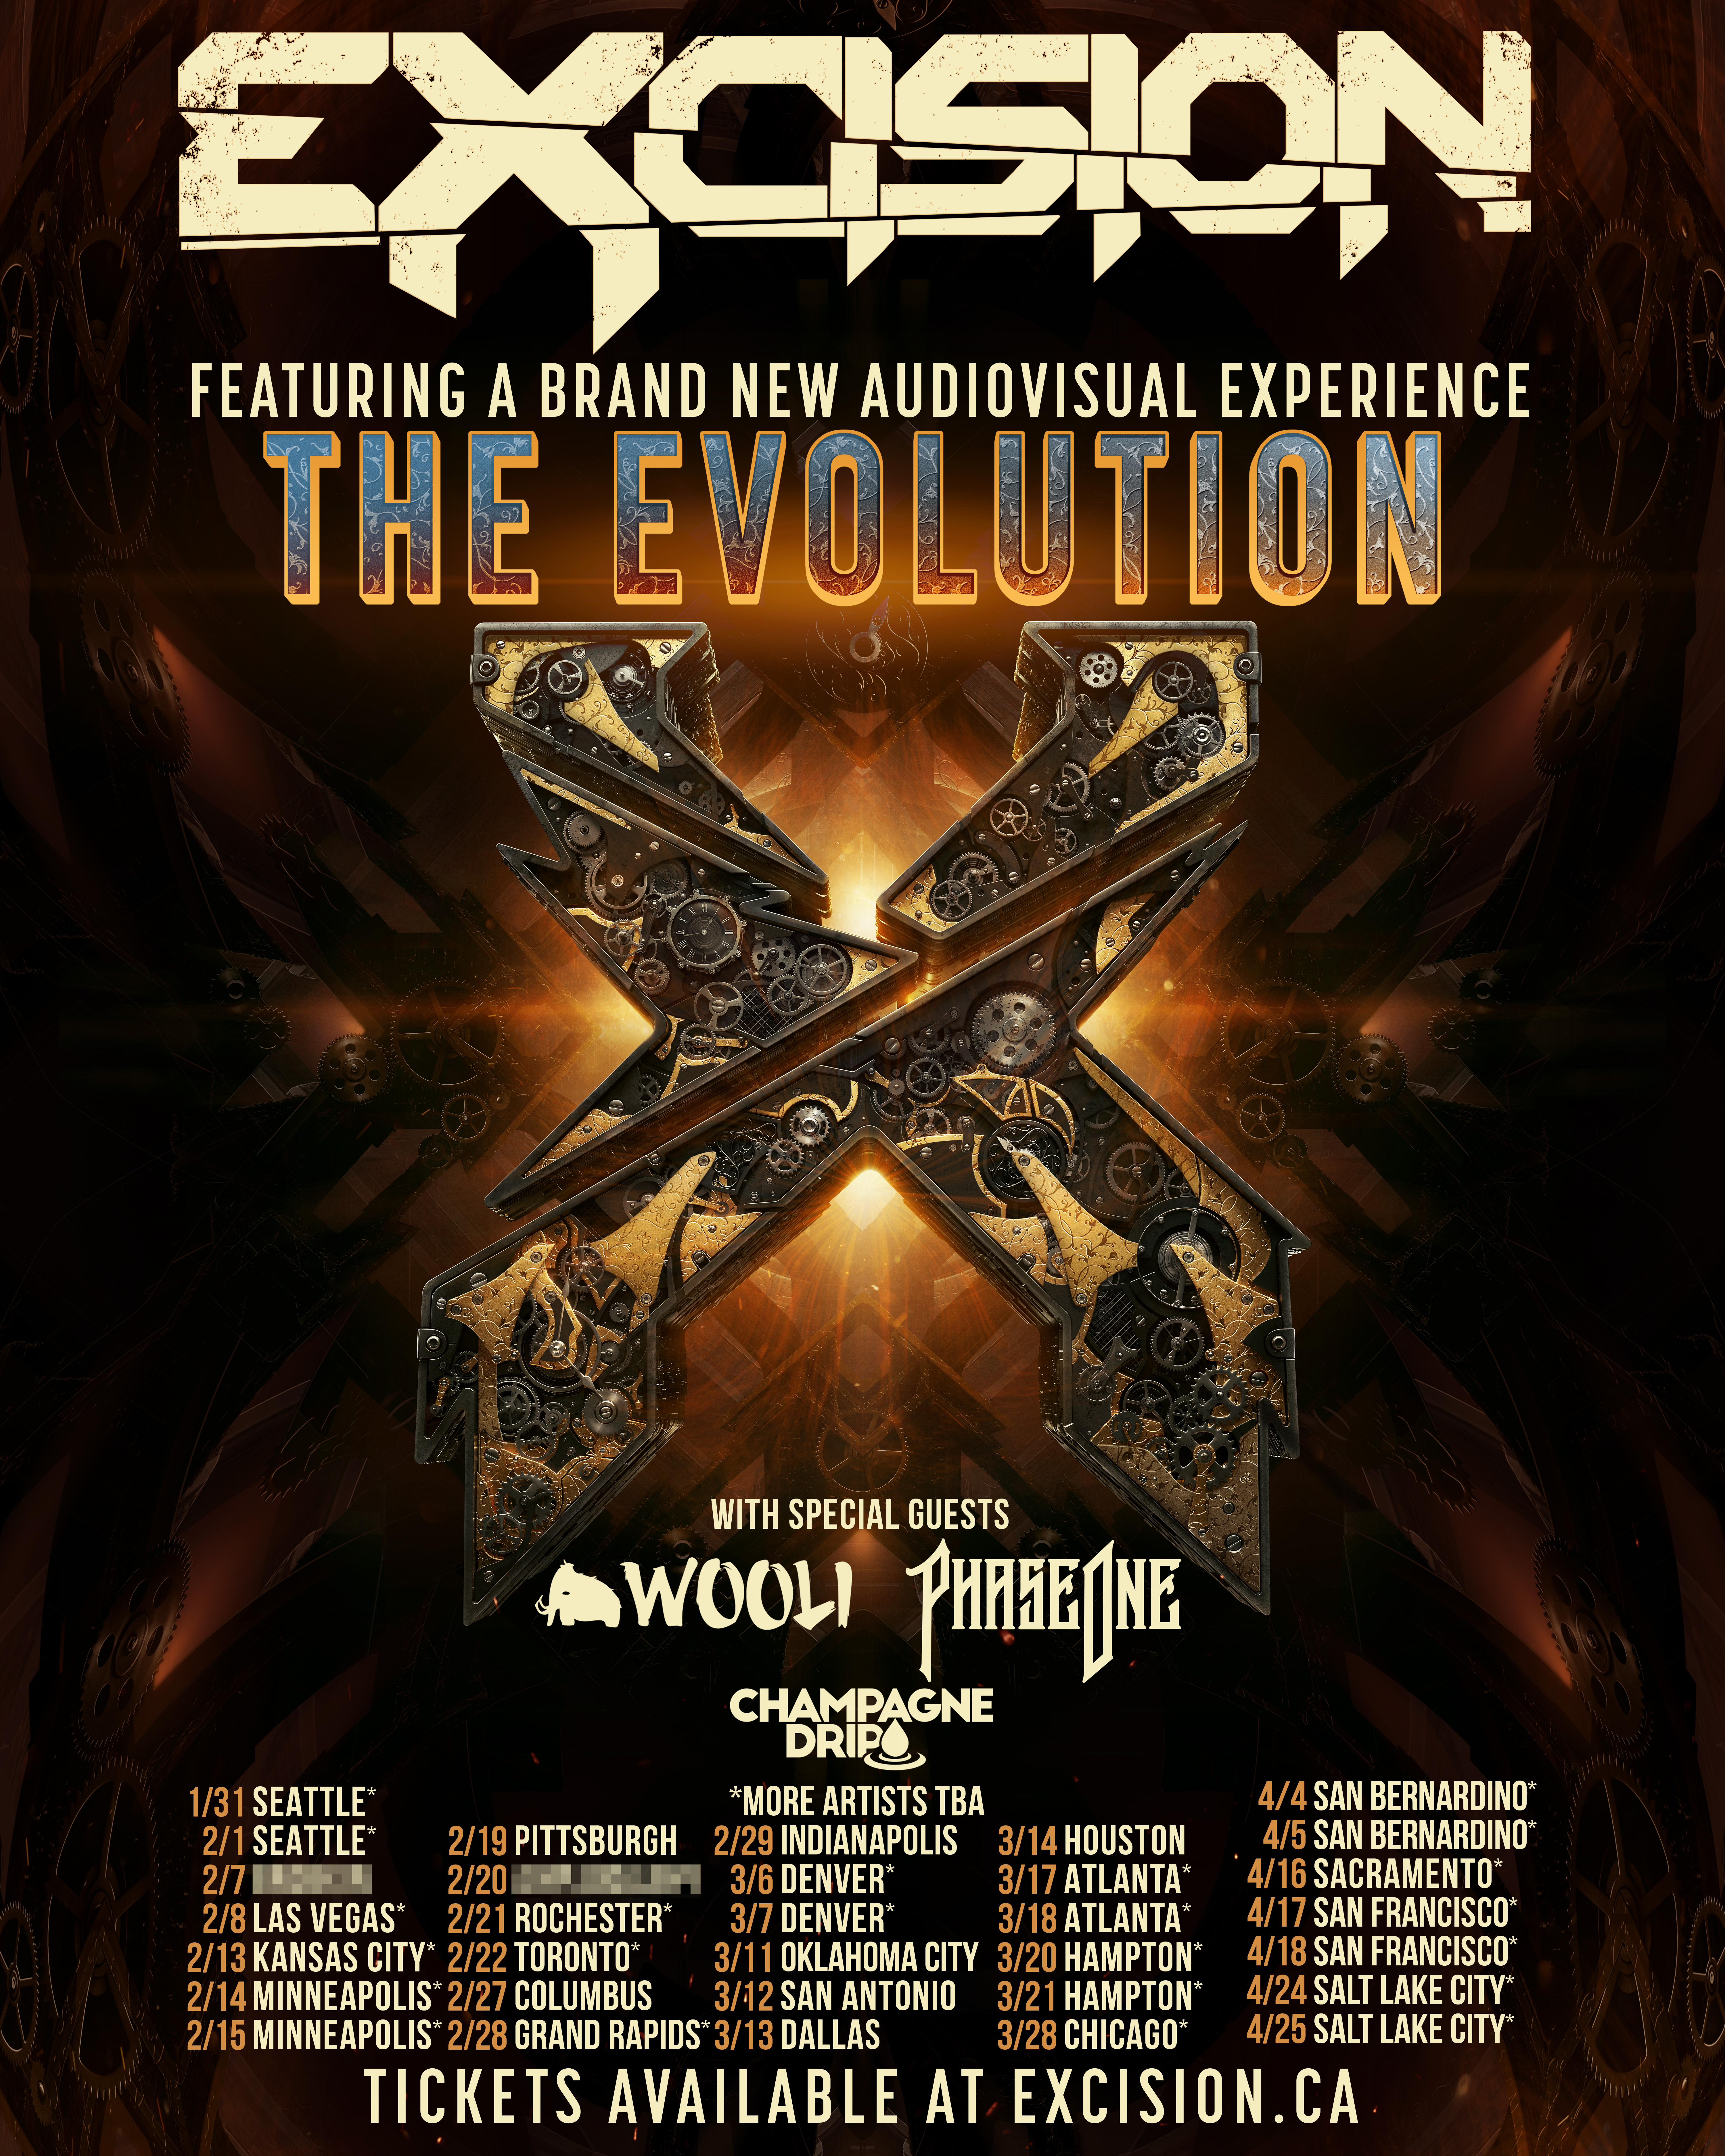 Excision 2020 Tour Tickets On Sale Now!